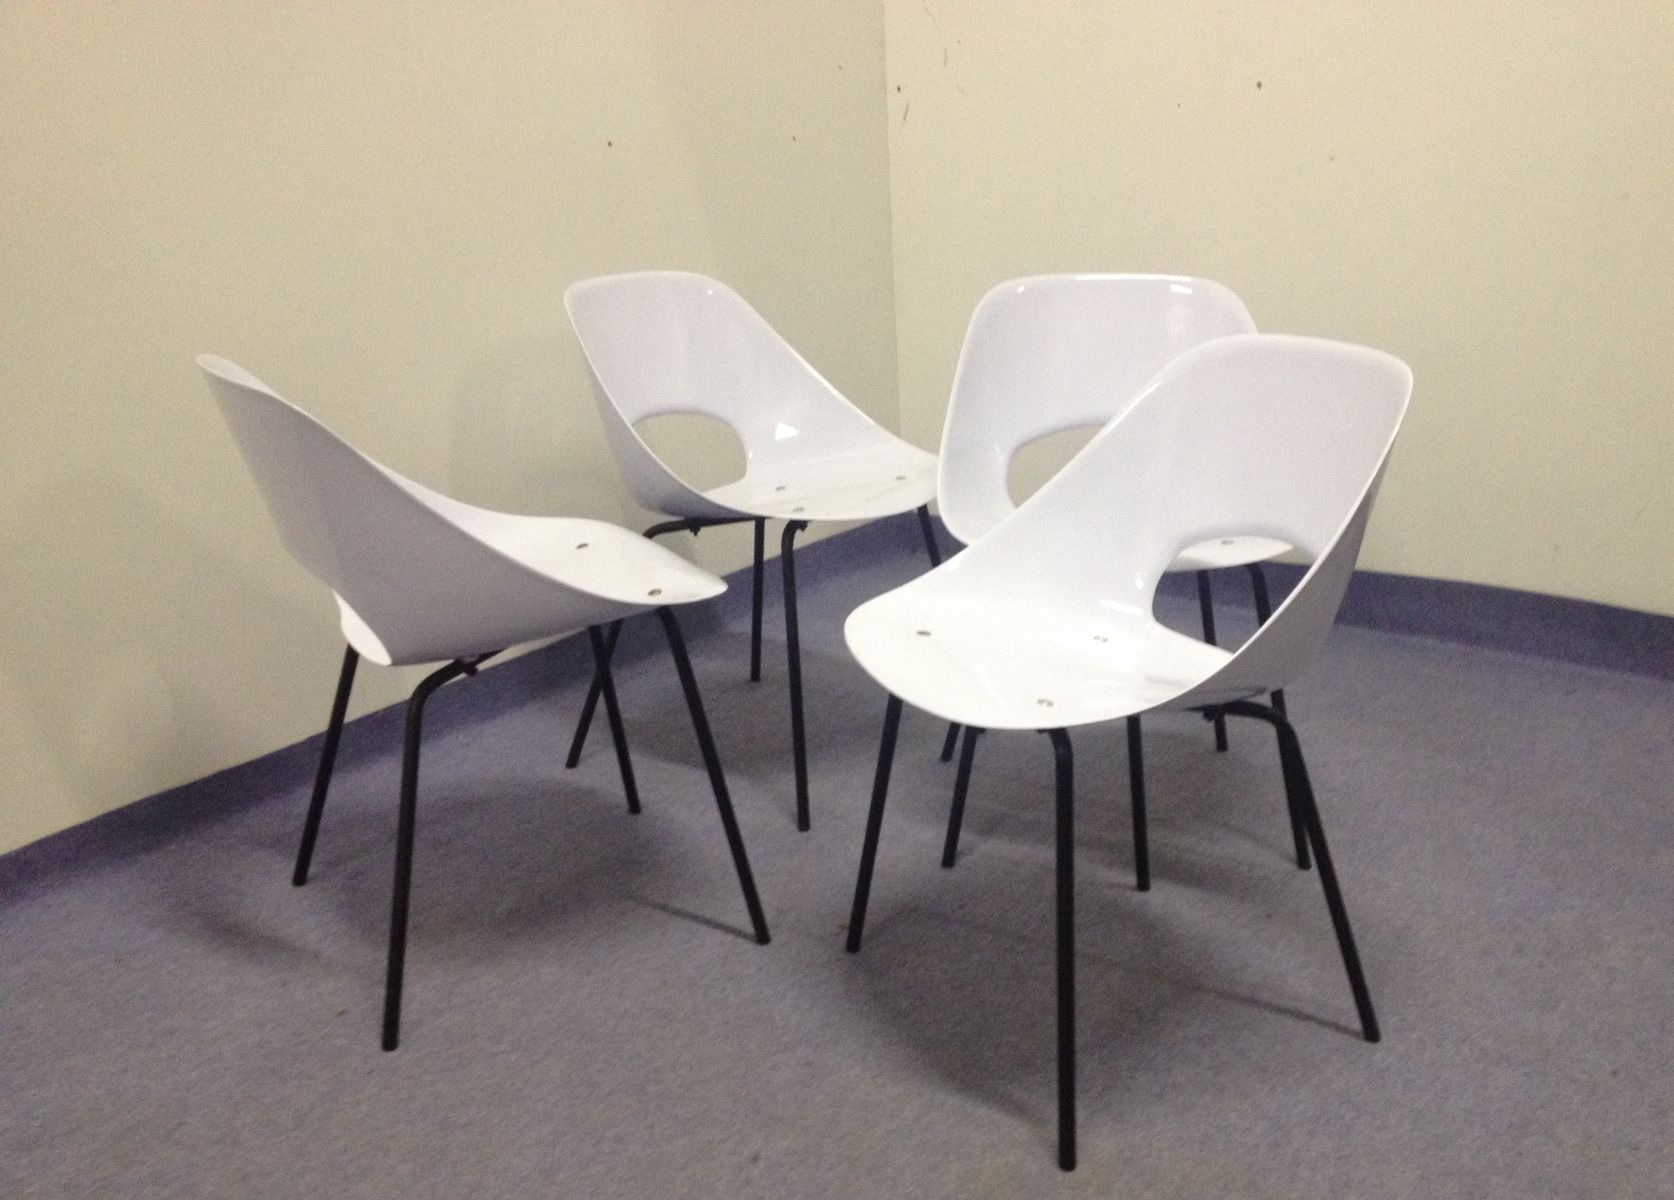 Tulip chairs by pierre guariche for steiner 1955 set of 4 for sale at pamono - Tulip chairs for sale ...